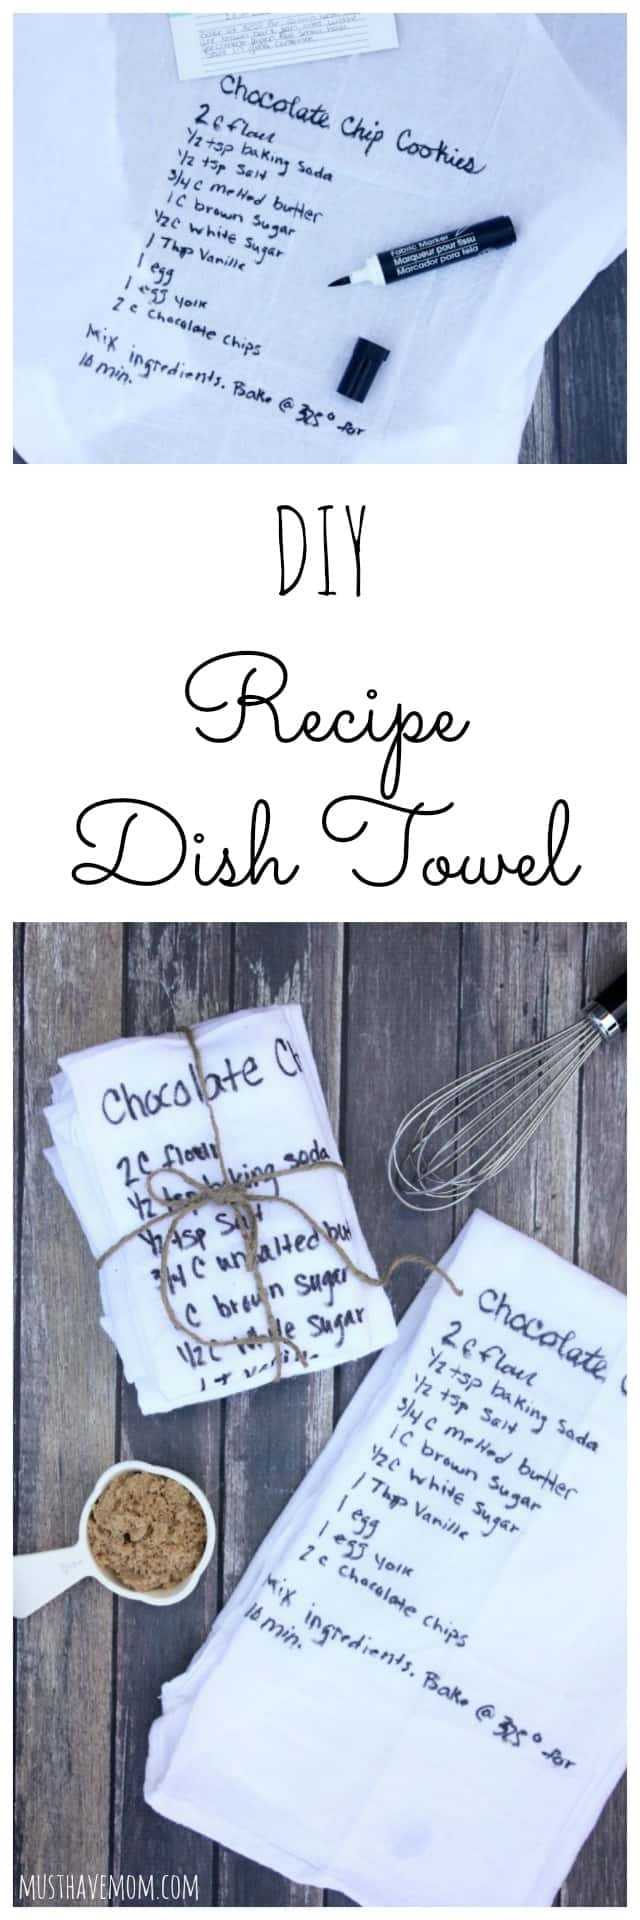 Diy Recipe Dish Towels Inexpensive Mother 39 S Day Gift Idea